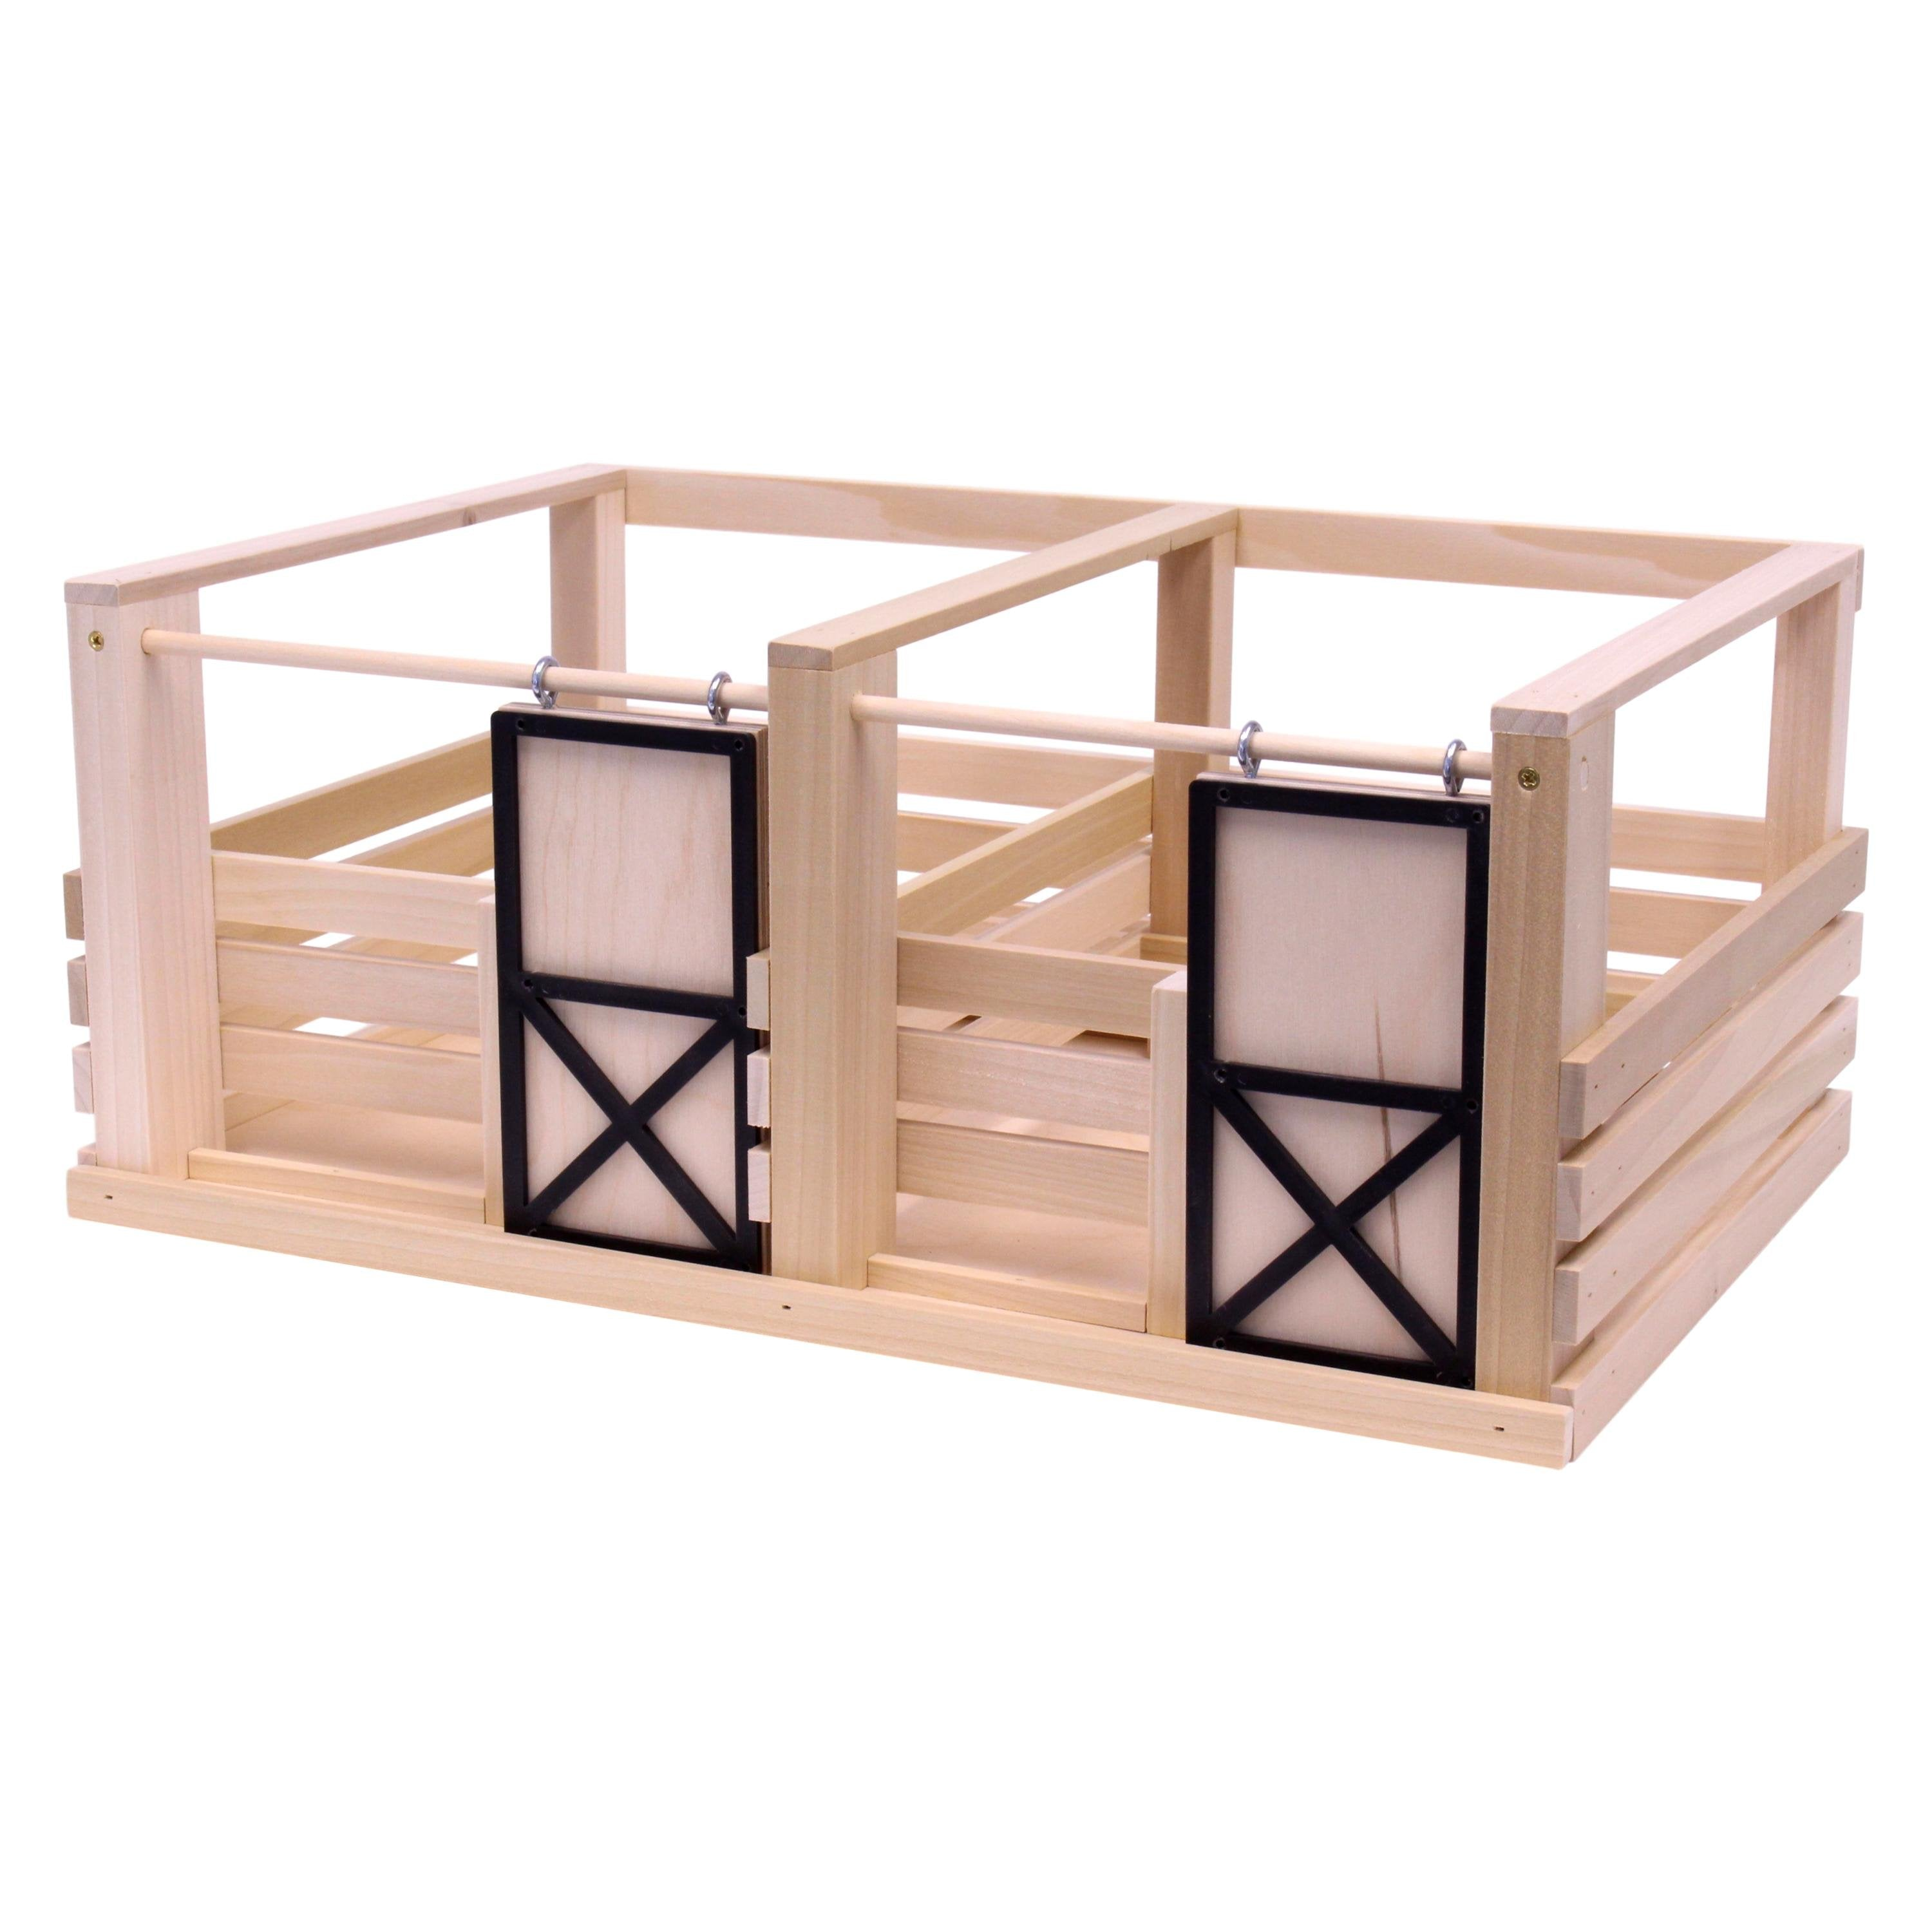 Amish Made Toy Wooden 2 Stall Horse Stable Amishtoybox Com